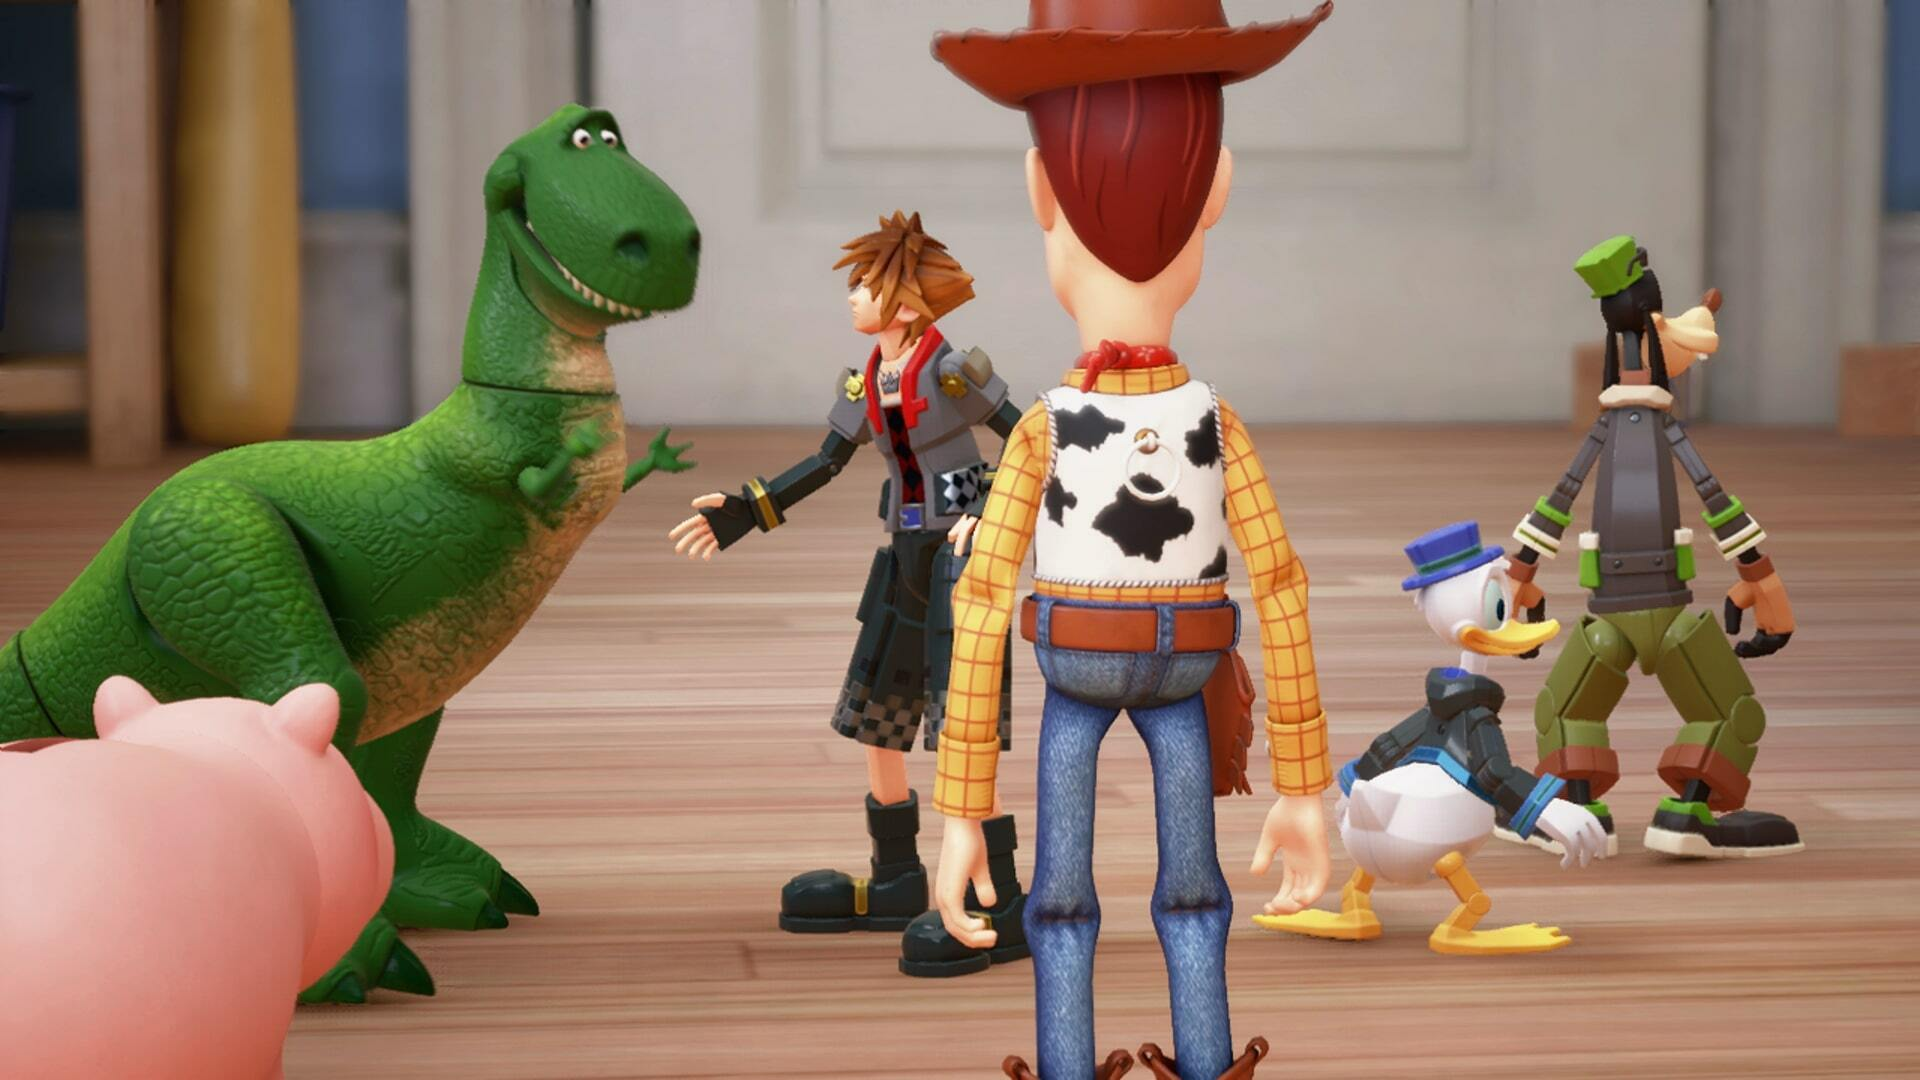 Kingdom Hearts 3 Voice Actors Meet The English Voice Cast Usgamer